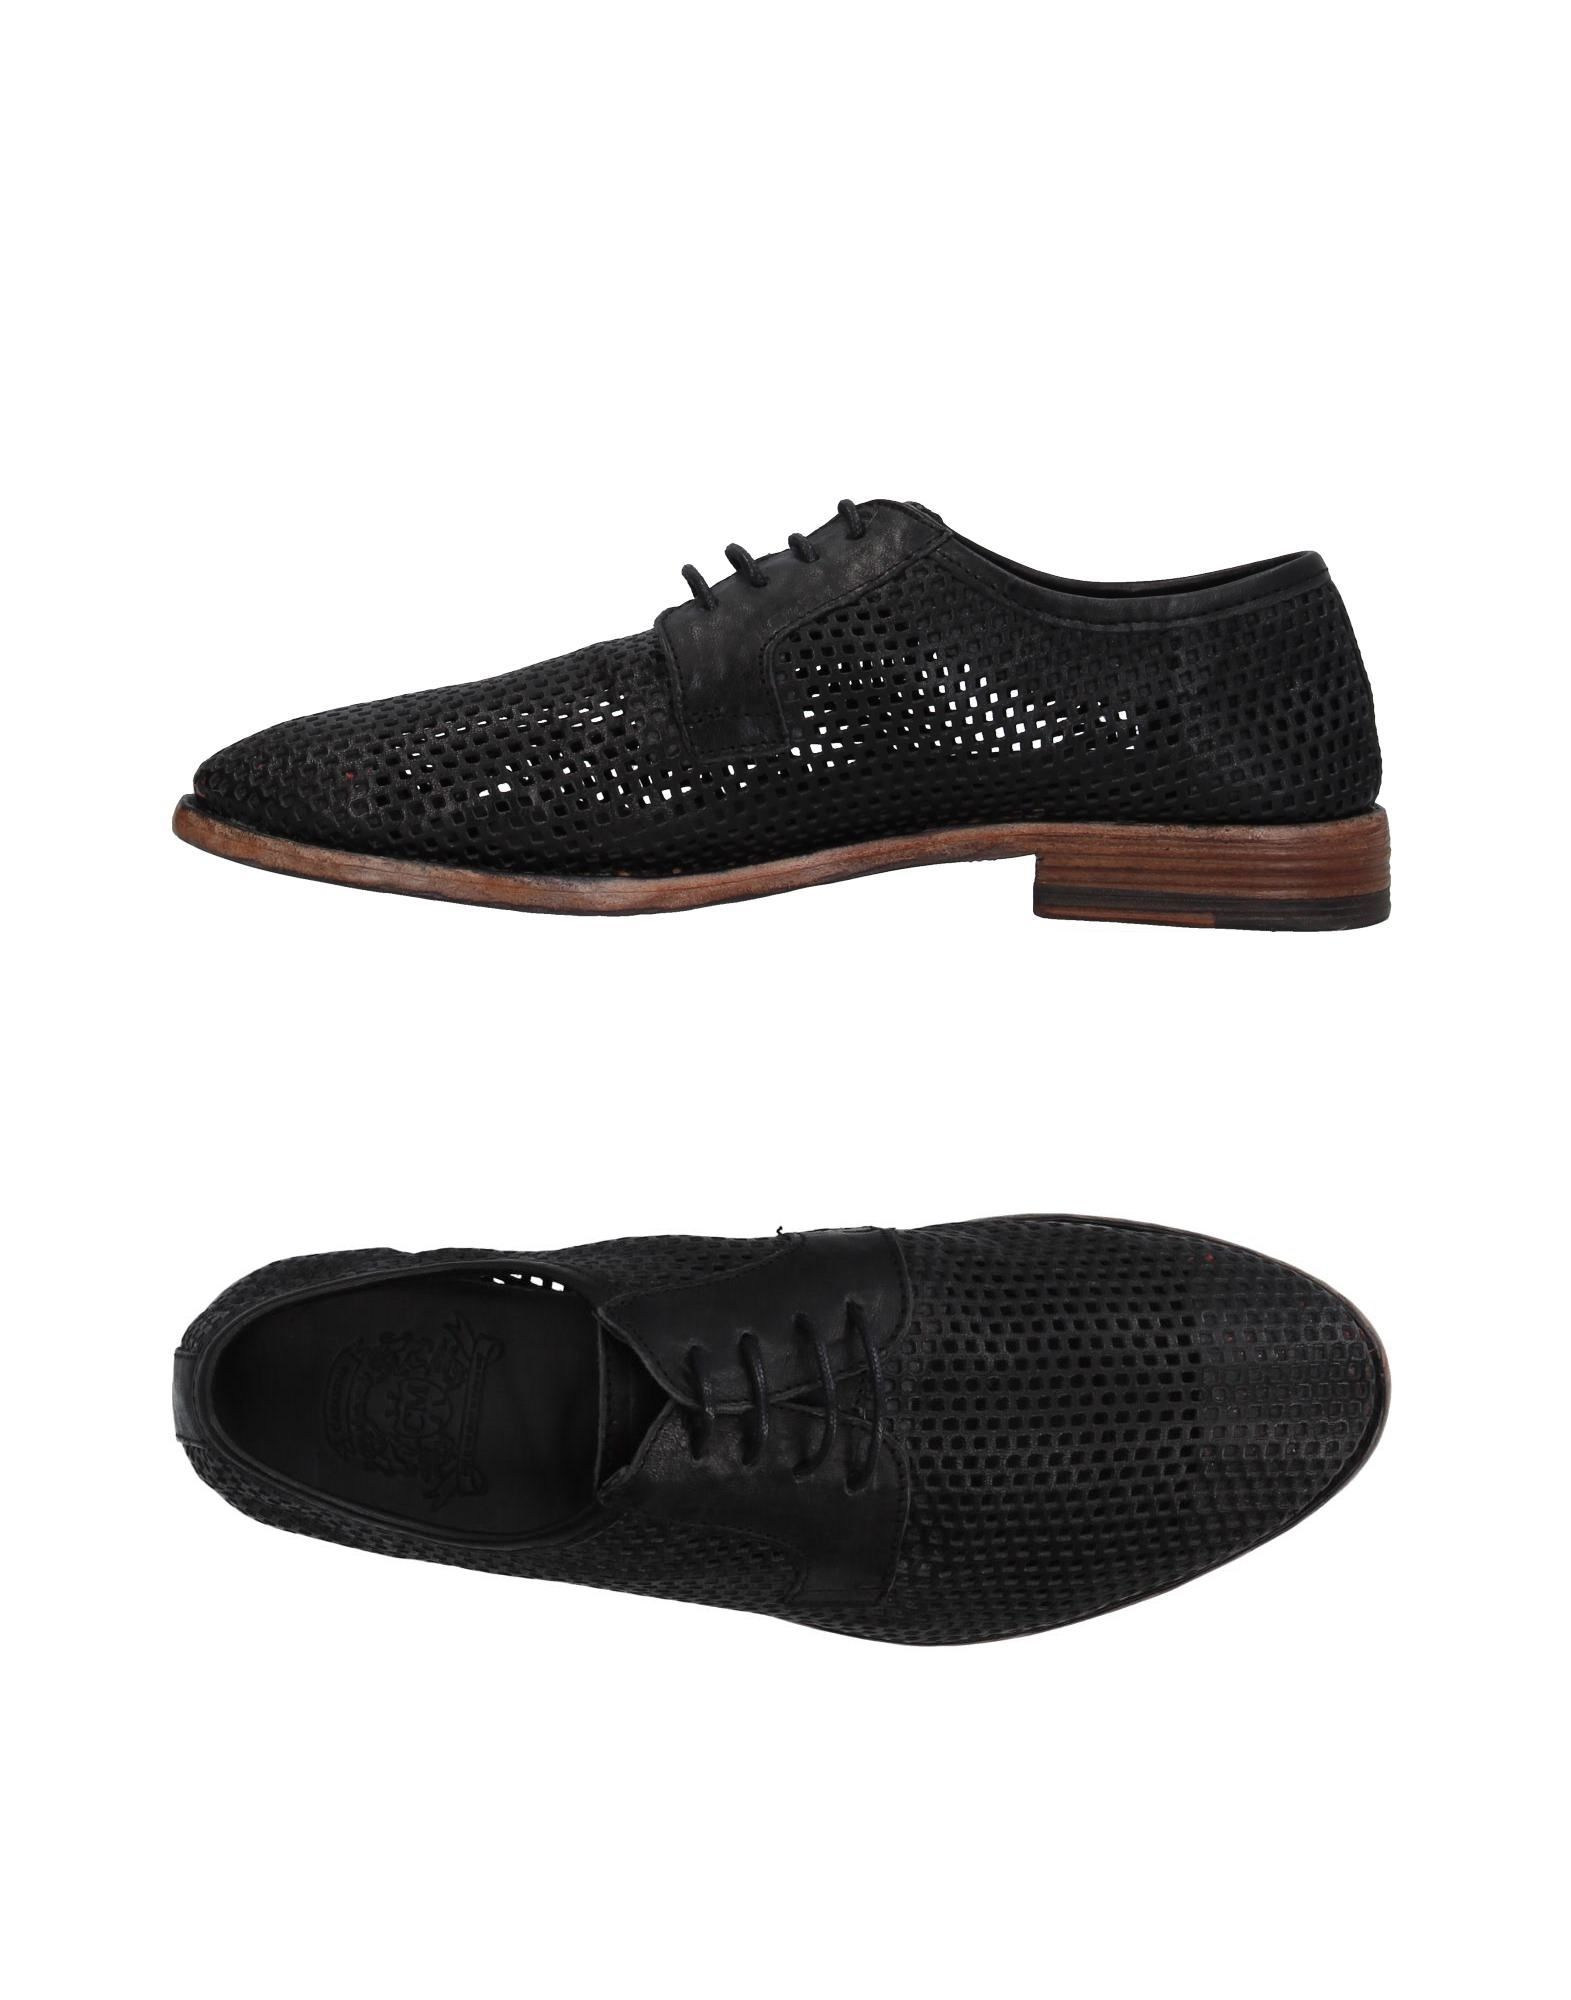 Chaussures À Lacets Catarina Martins Femme - Chaussures À Lacets Catarina Martins sur